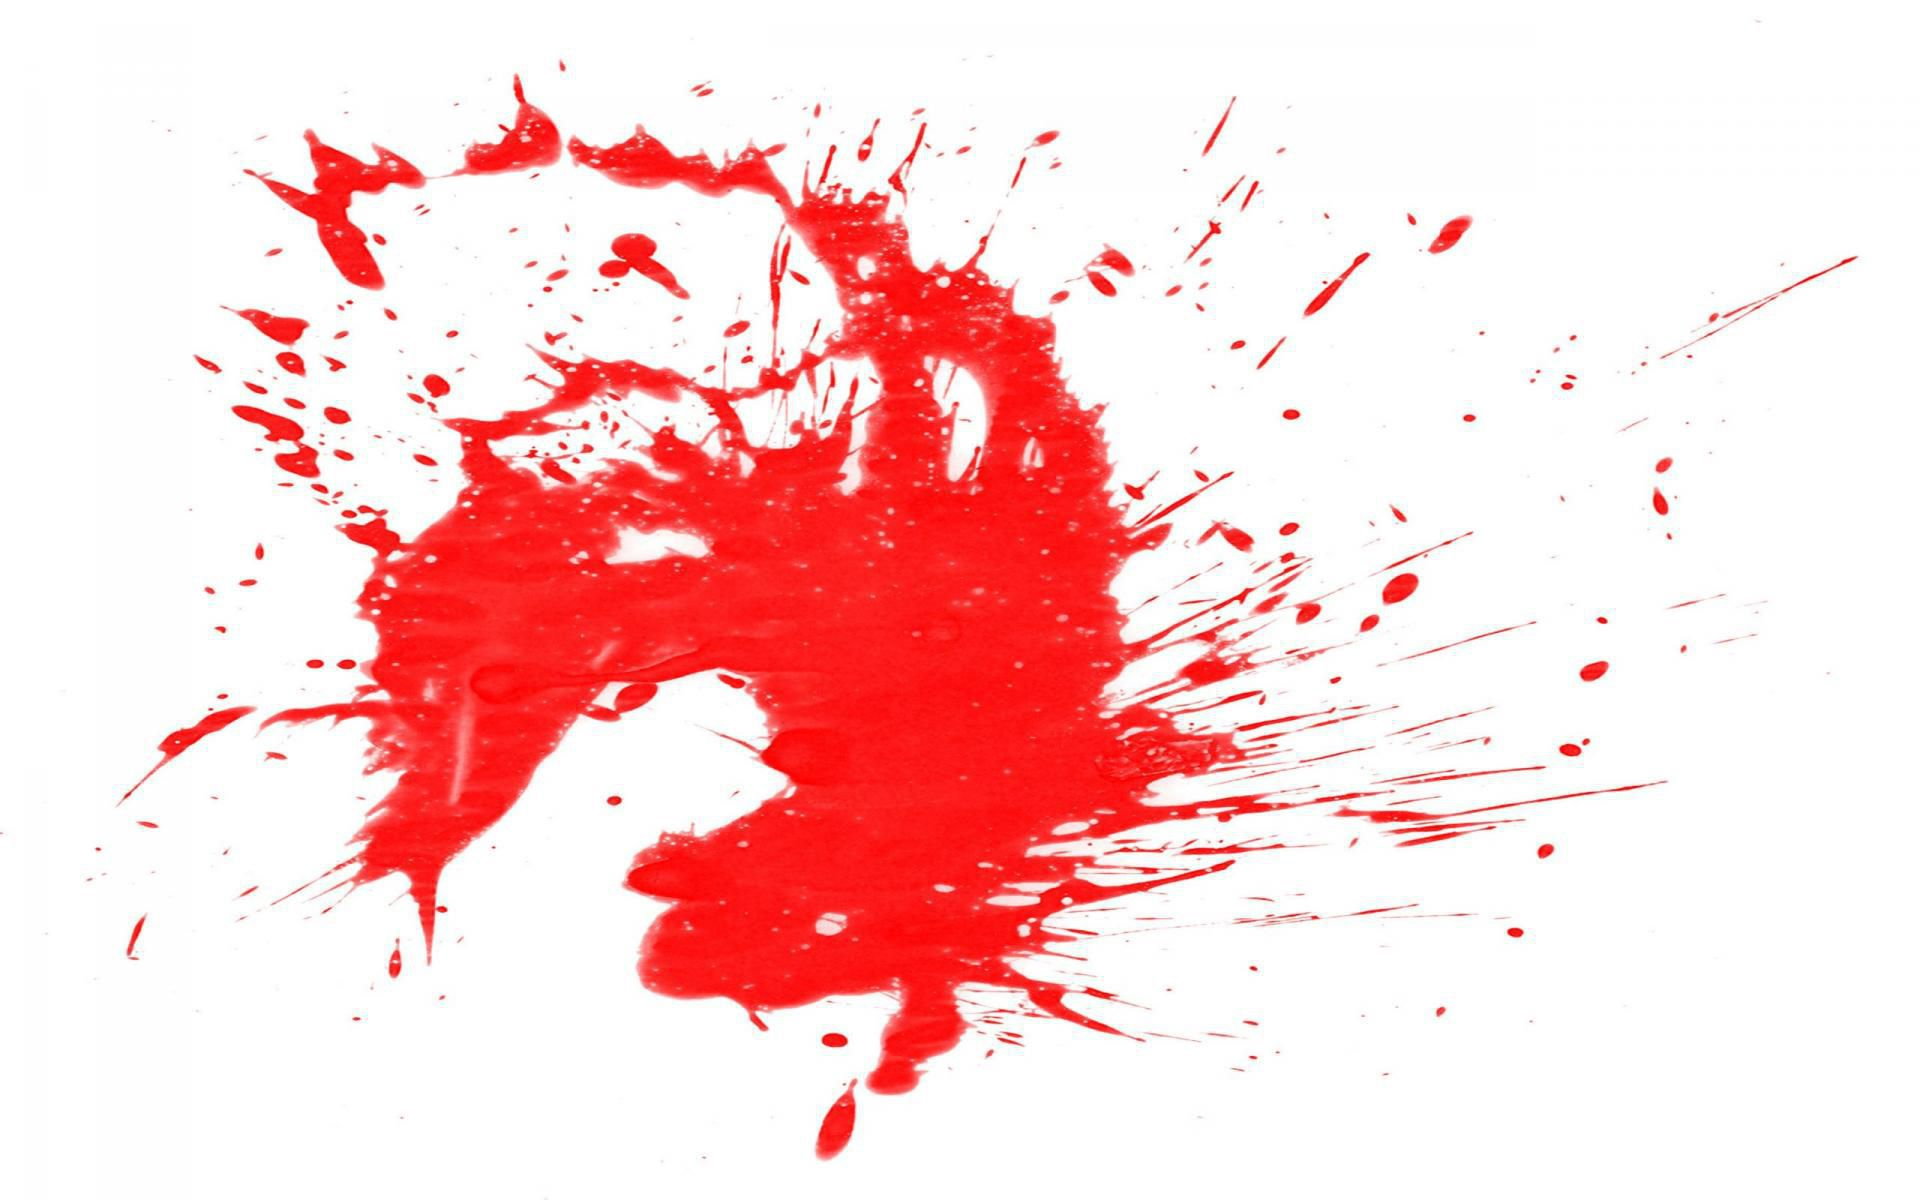 Blood Splatter Pictures